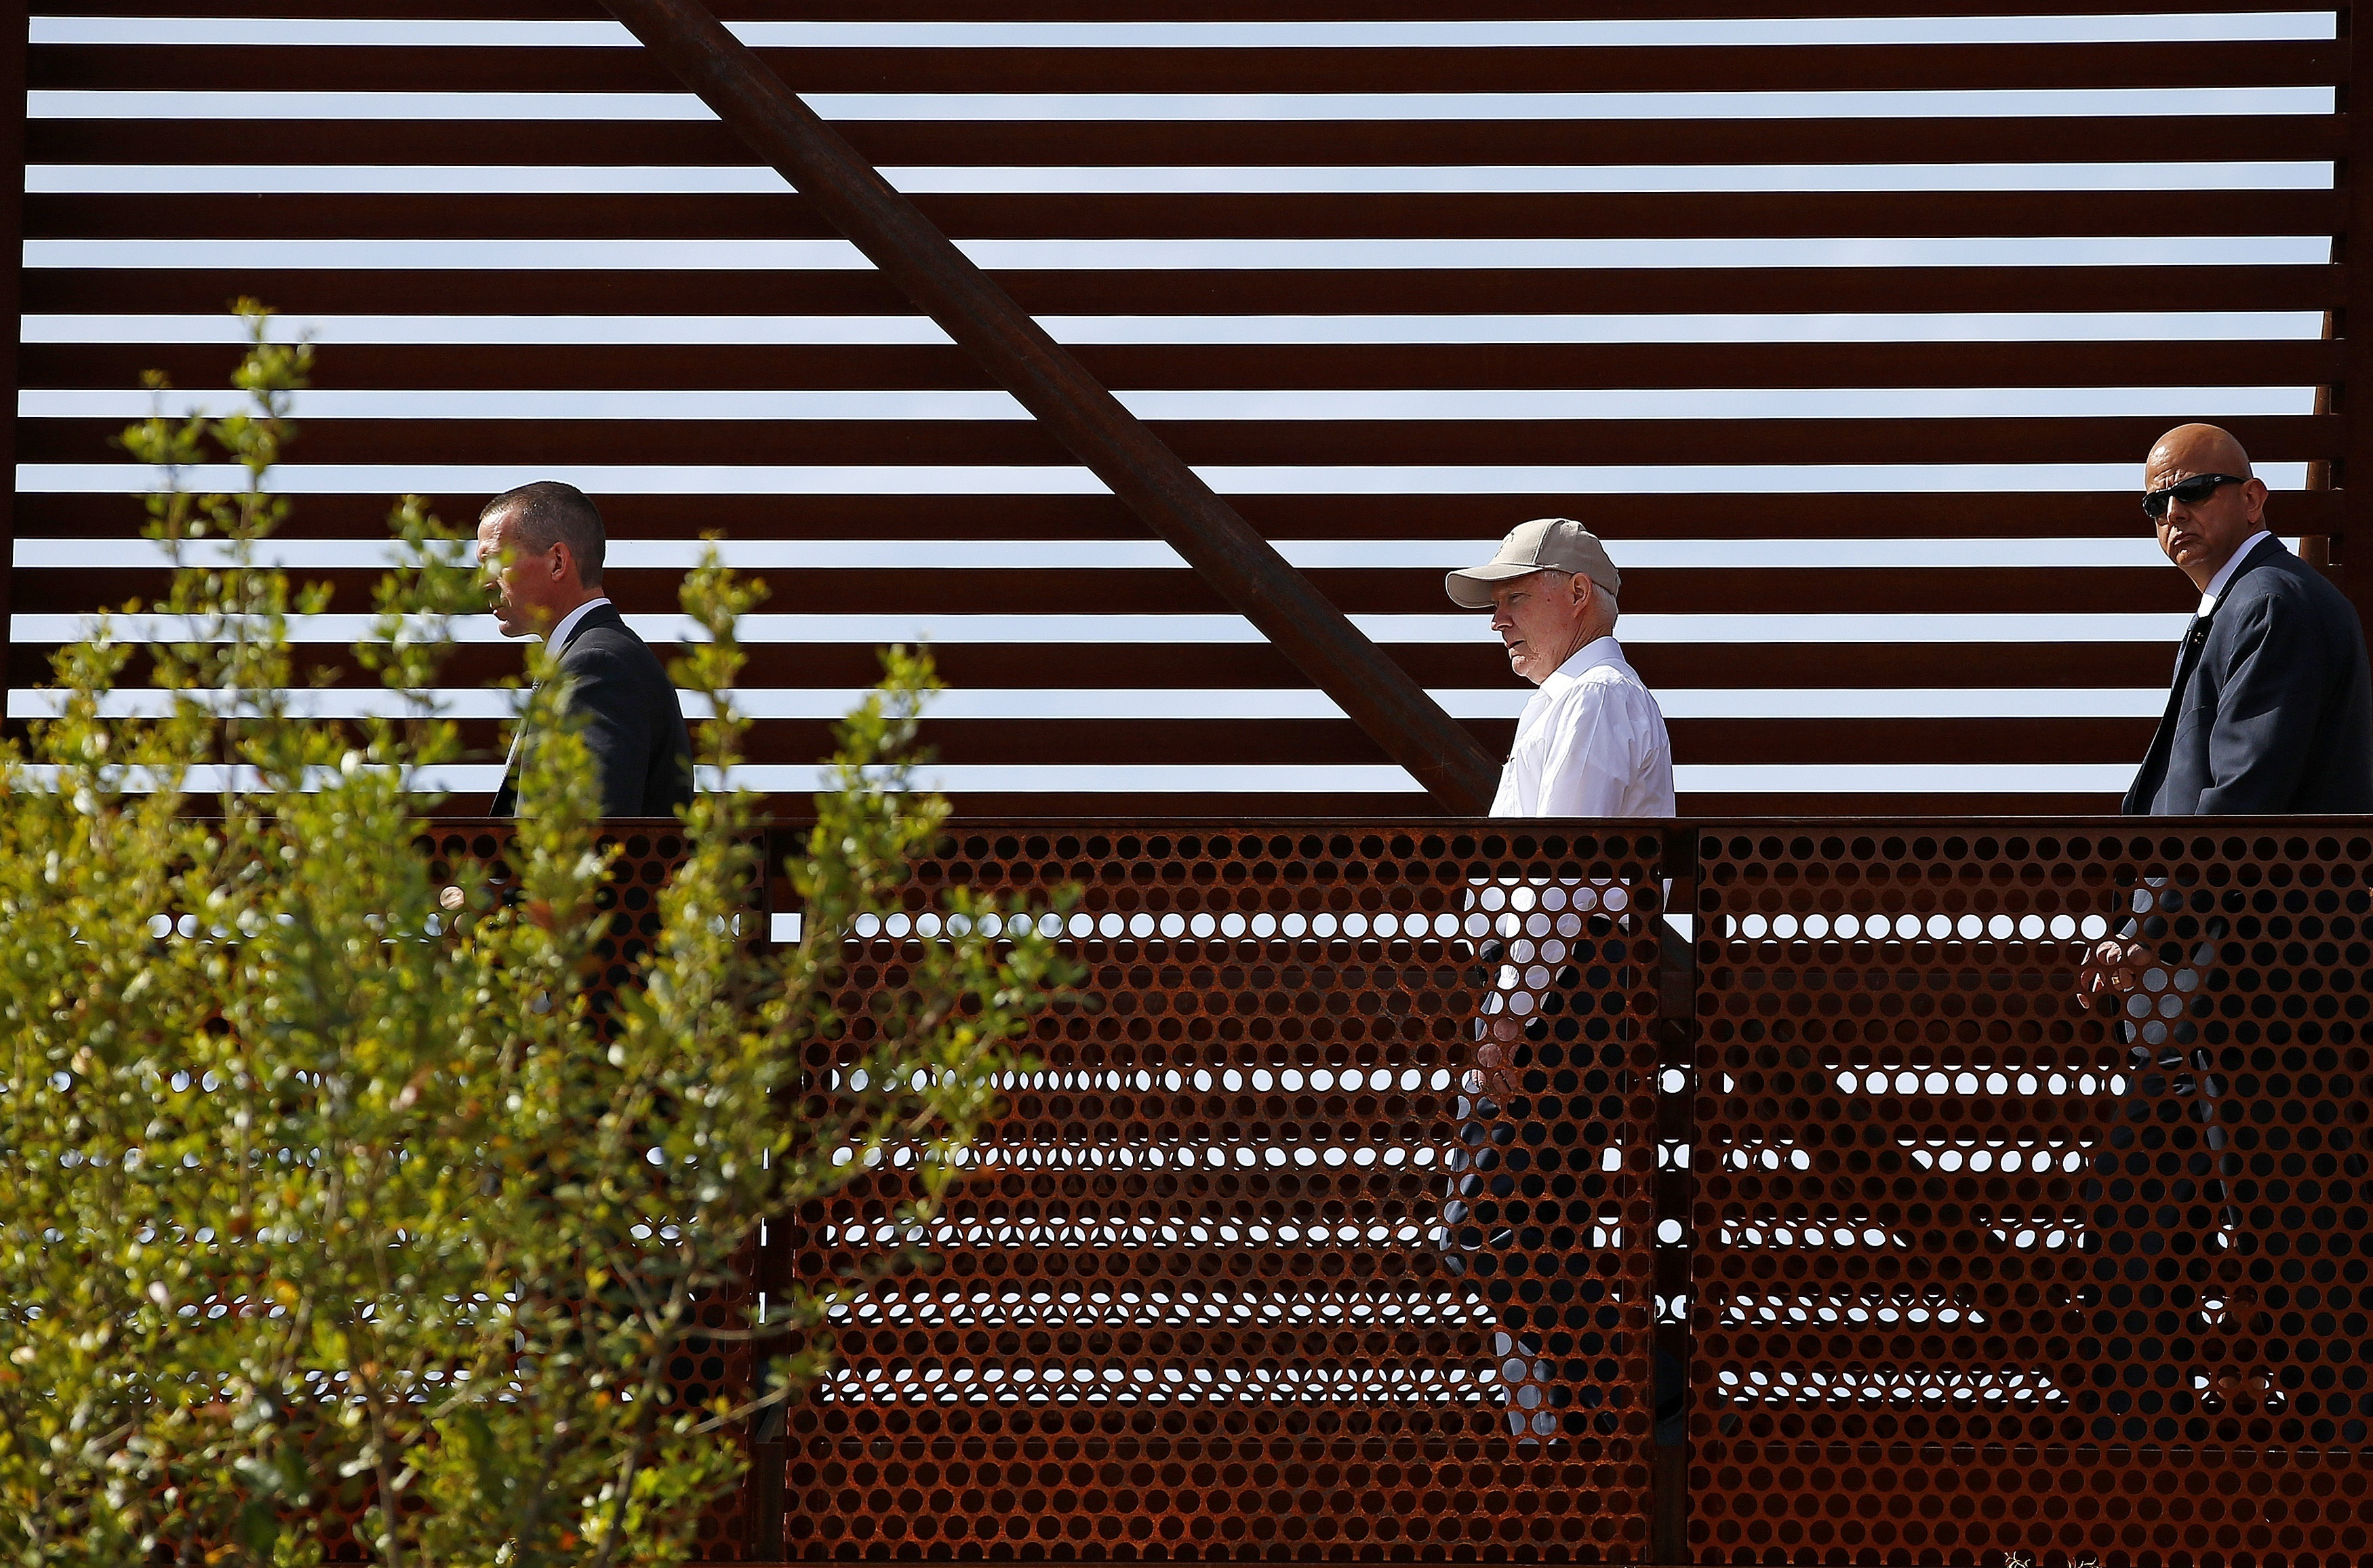 """Attorney General Jeff Sessions tours the U.S.-Mexico border with border officials in Nogales, Ariz. on April 11, 2017. A courthouse on the border in Texas is serving as a model for the kind of tough immigration enforcement advocated by President Donald Trump. """"This is a new era. This is the Trump era,"""" Sessions said during a visit to the border in Nogales, Ariz., this month."""